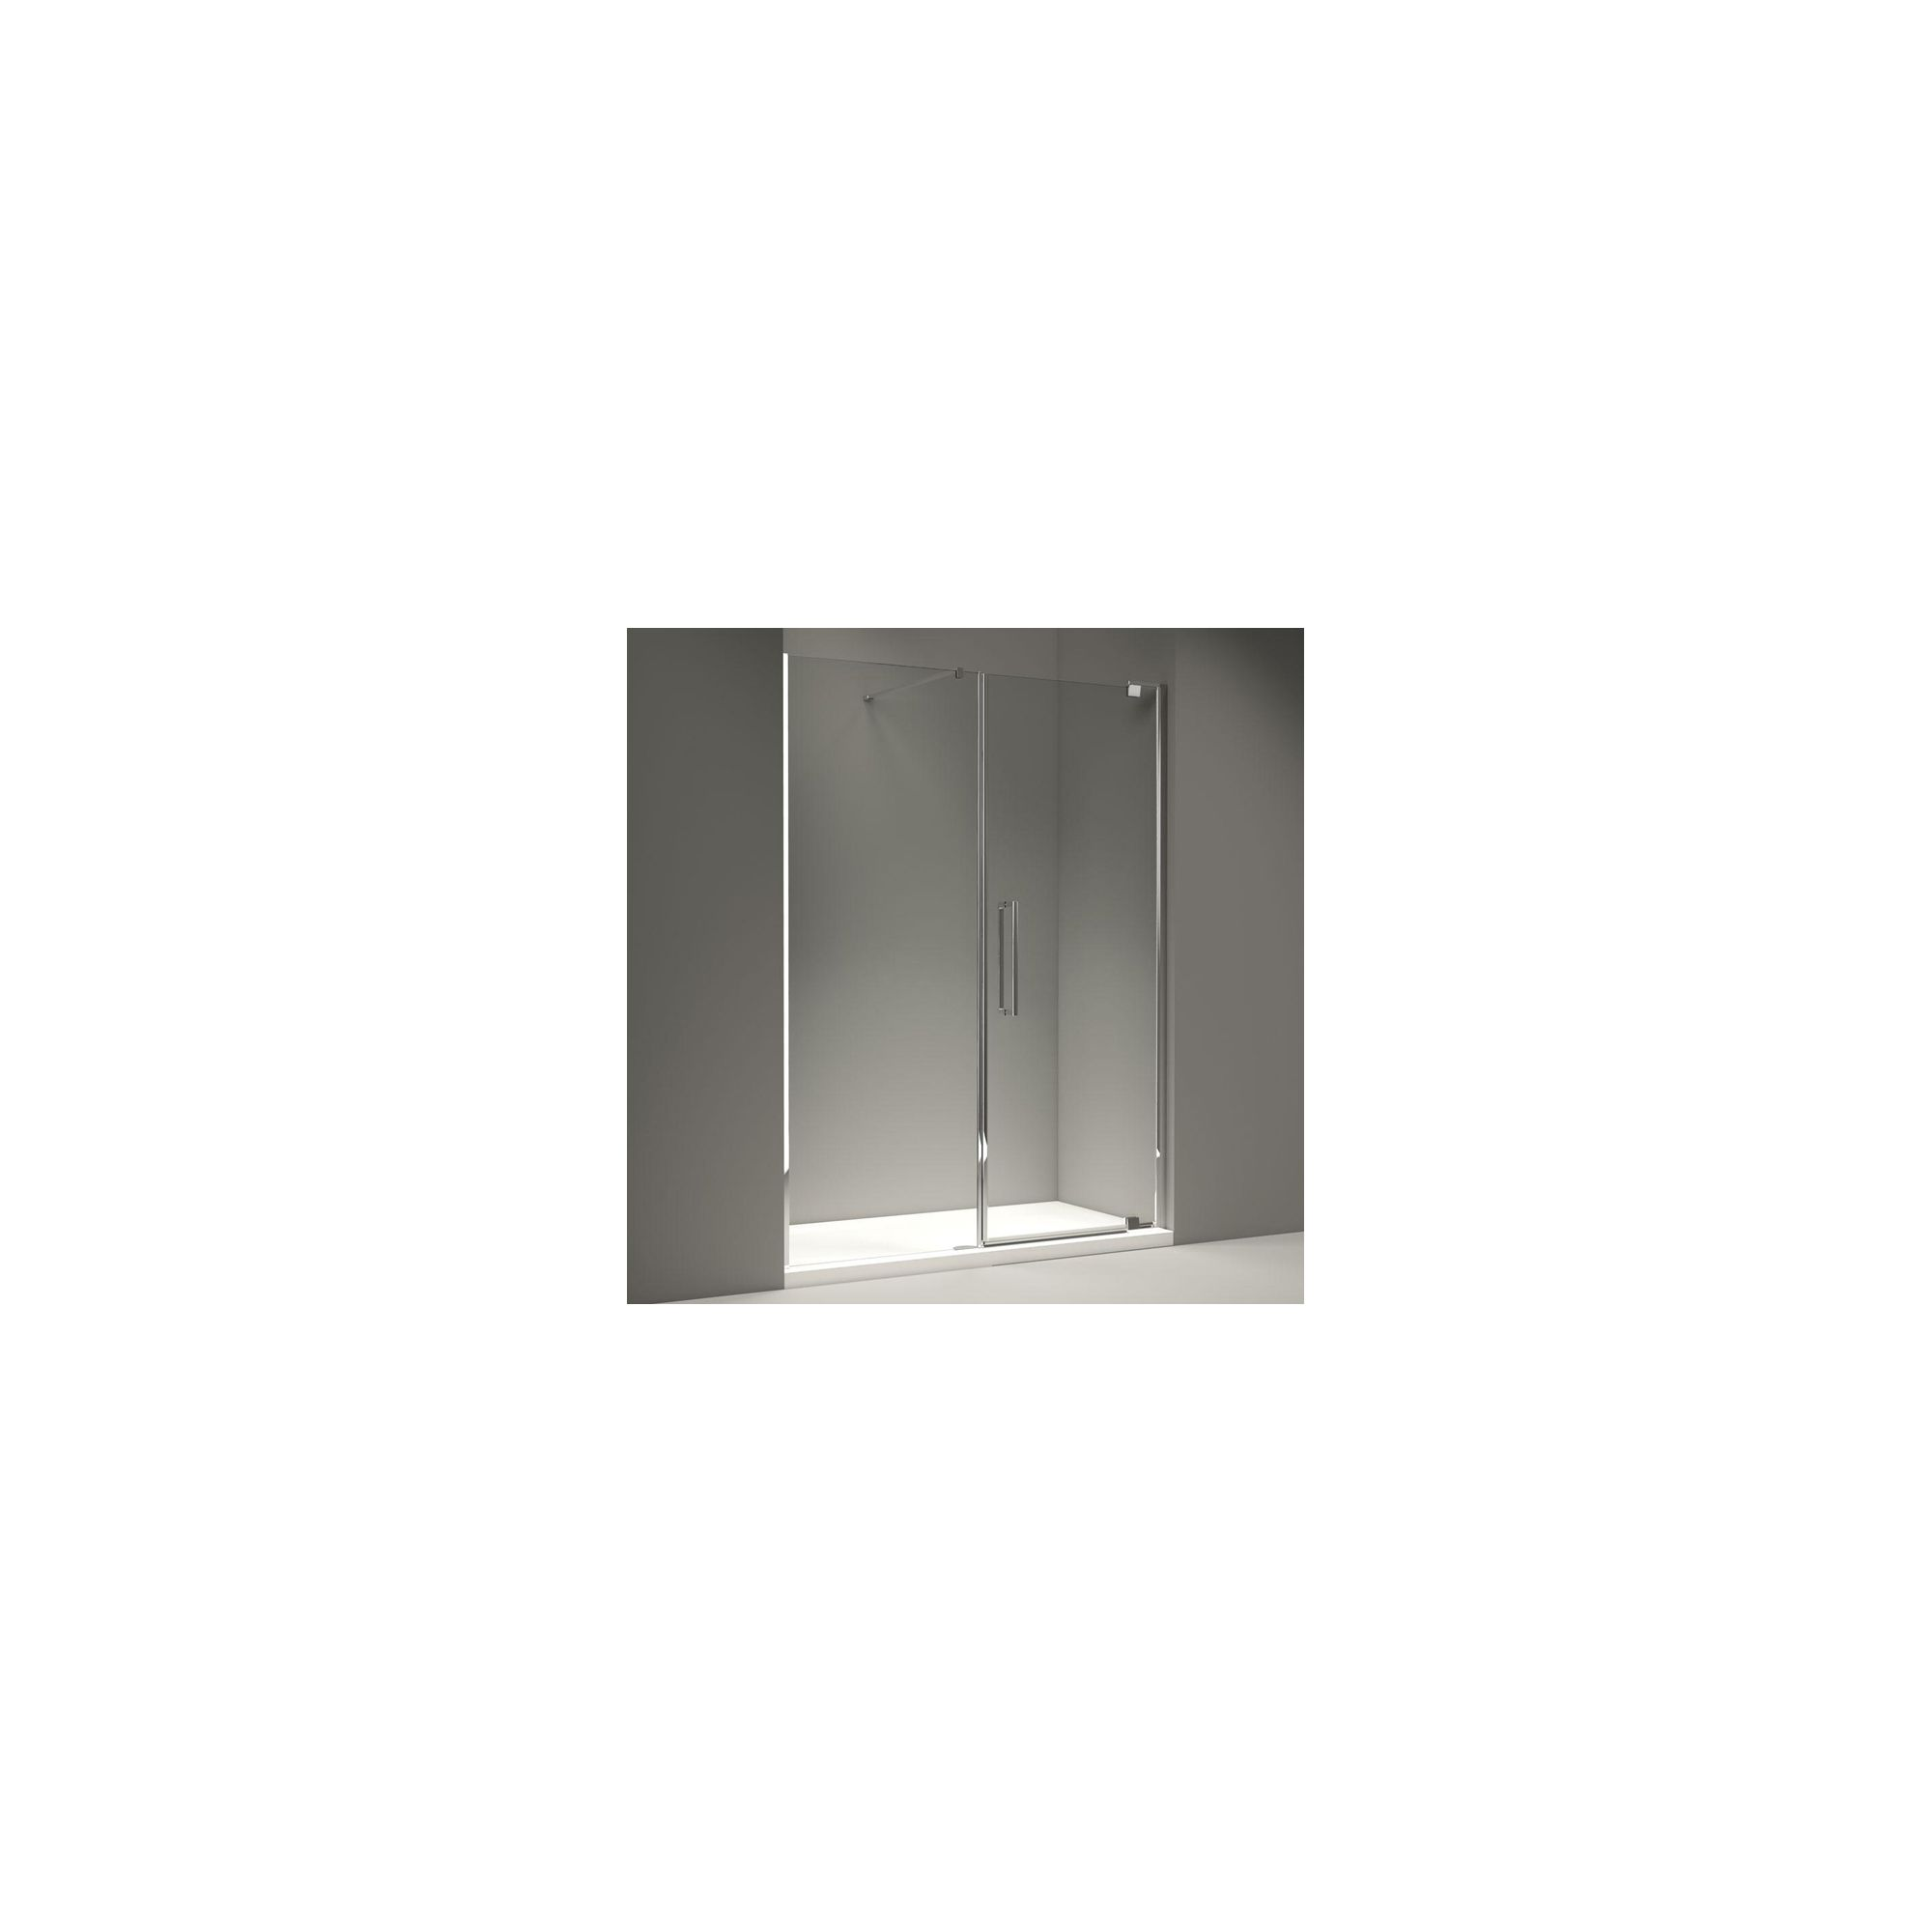 Merlyn Series 10 Inline Pivot Shower Door, 1600mm Wide, 10mm Smoked Glass at Tesco Direct